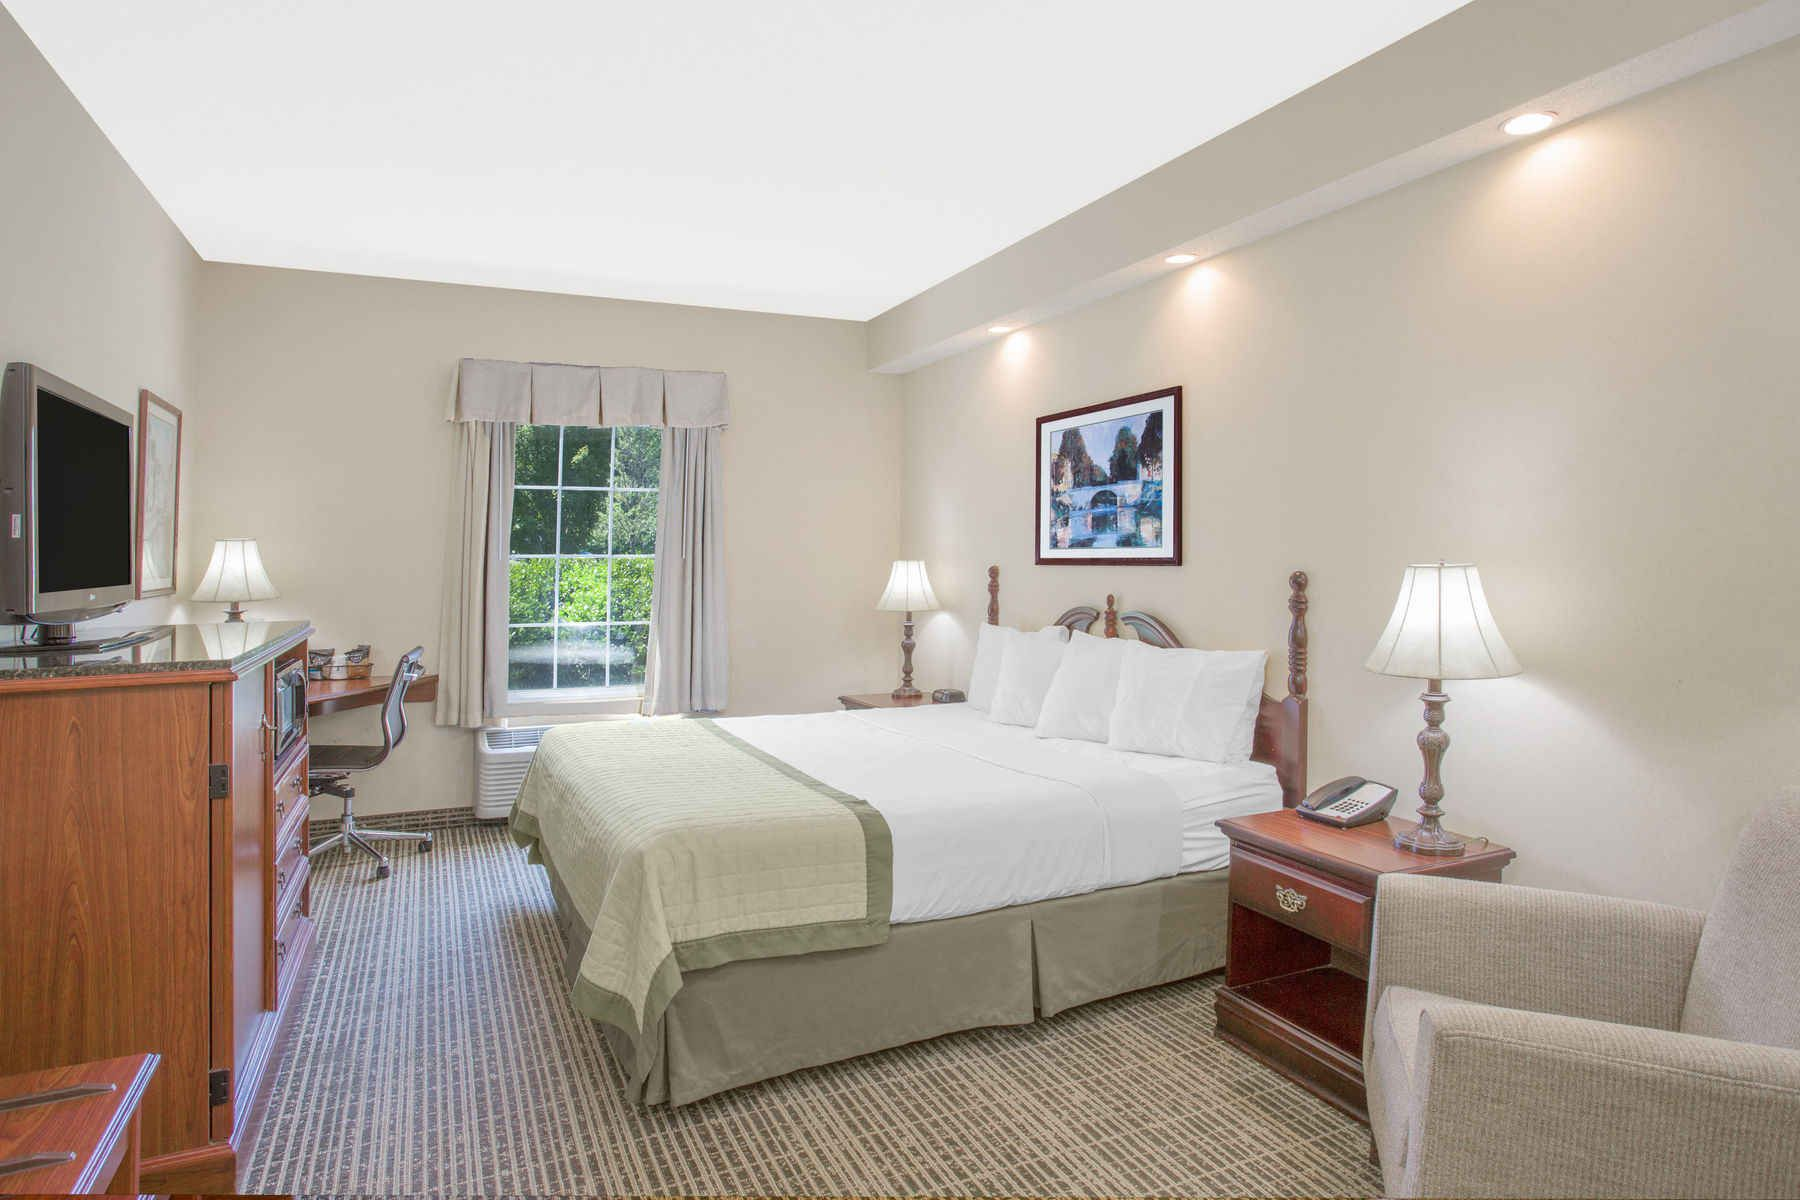 Book Pet Friendly Hotel In Martinsville Va Near Sdway Features Free Breakfast Wifi Meeting